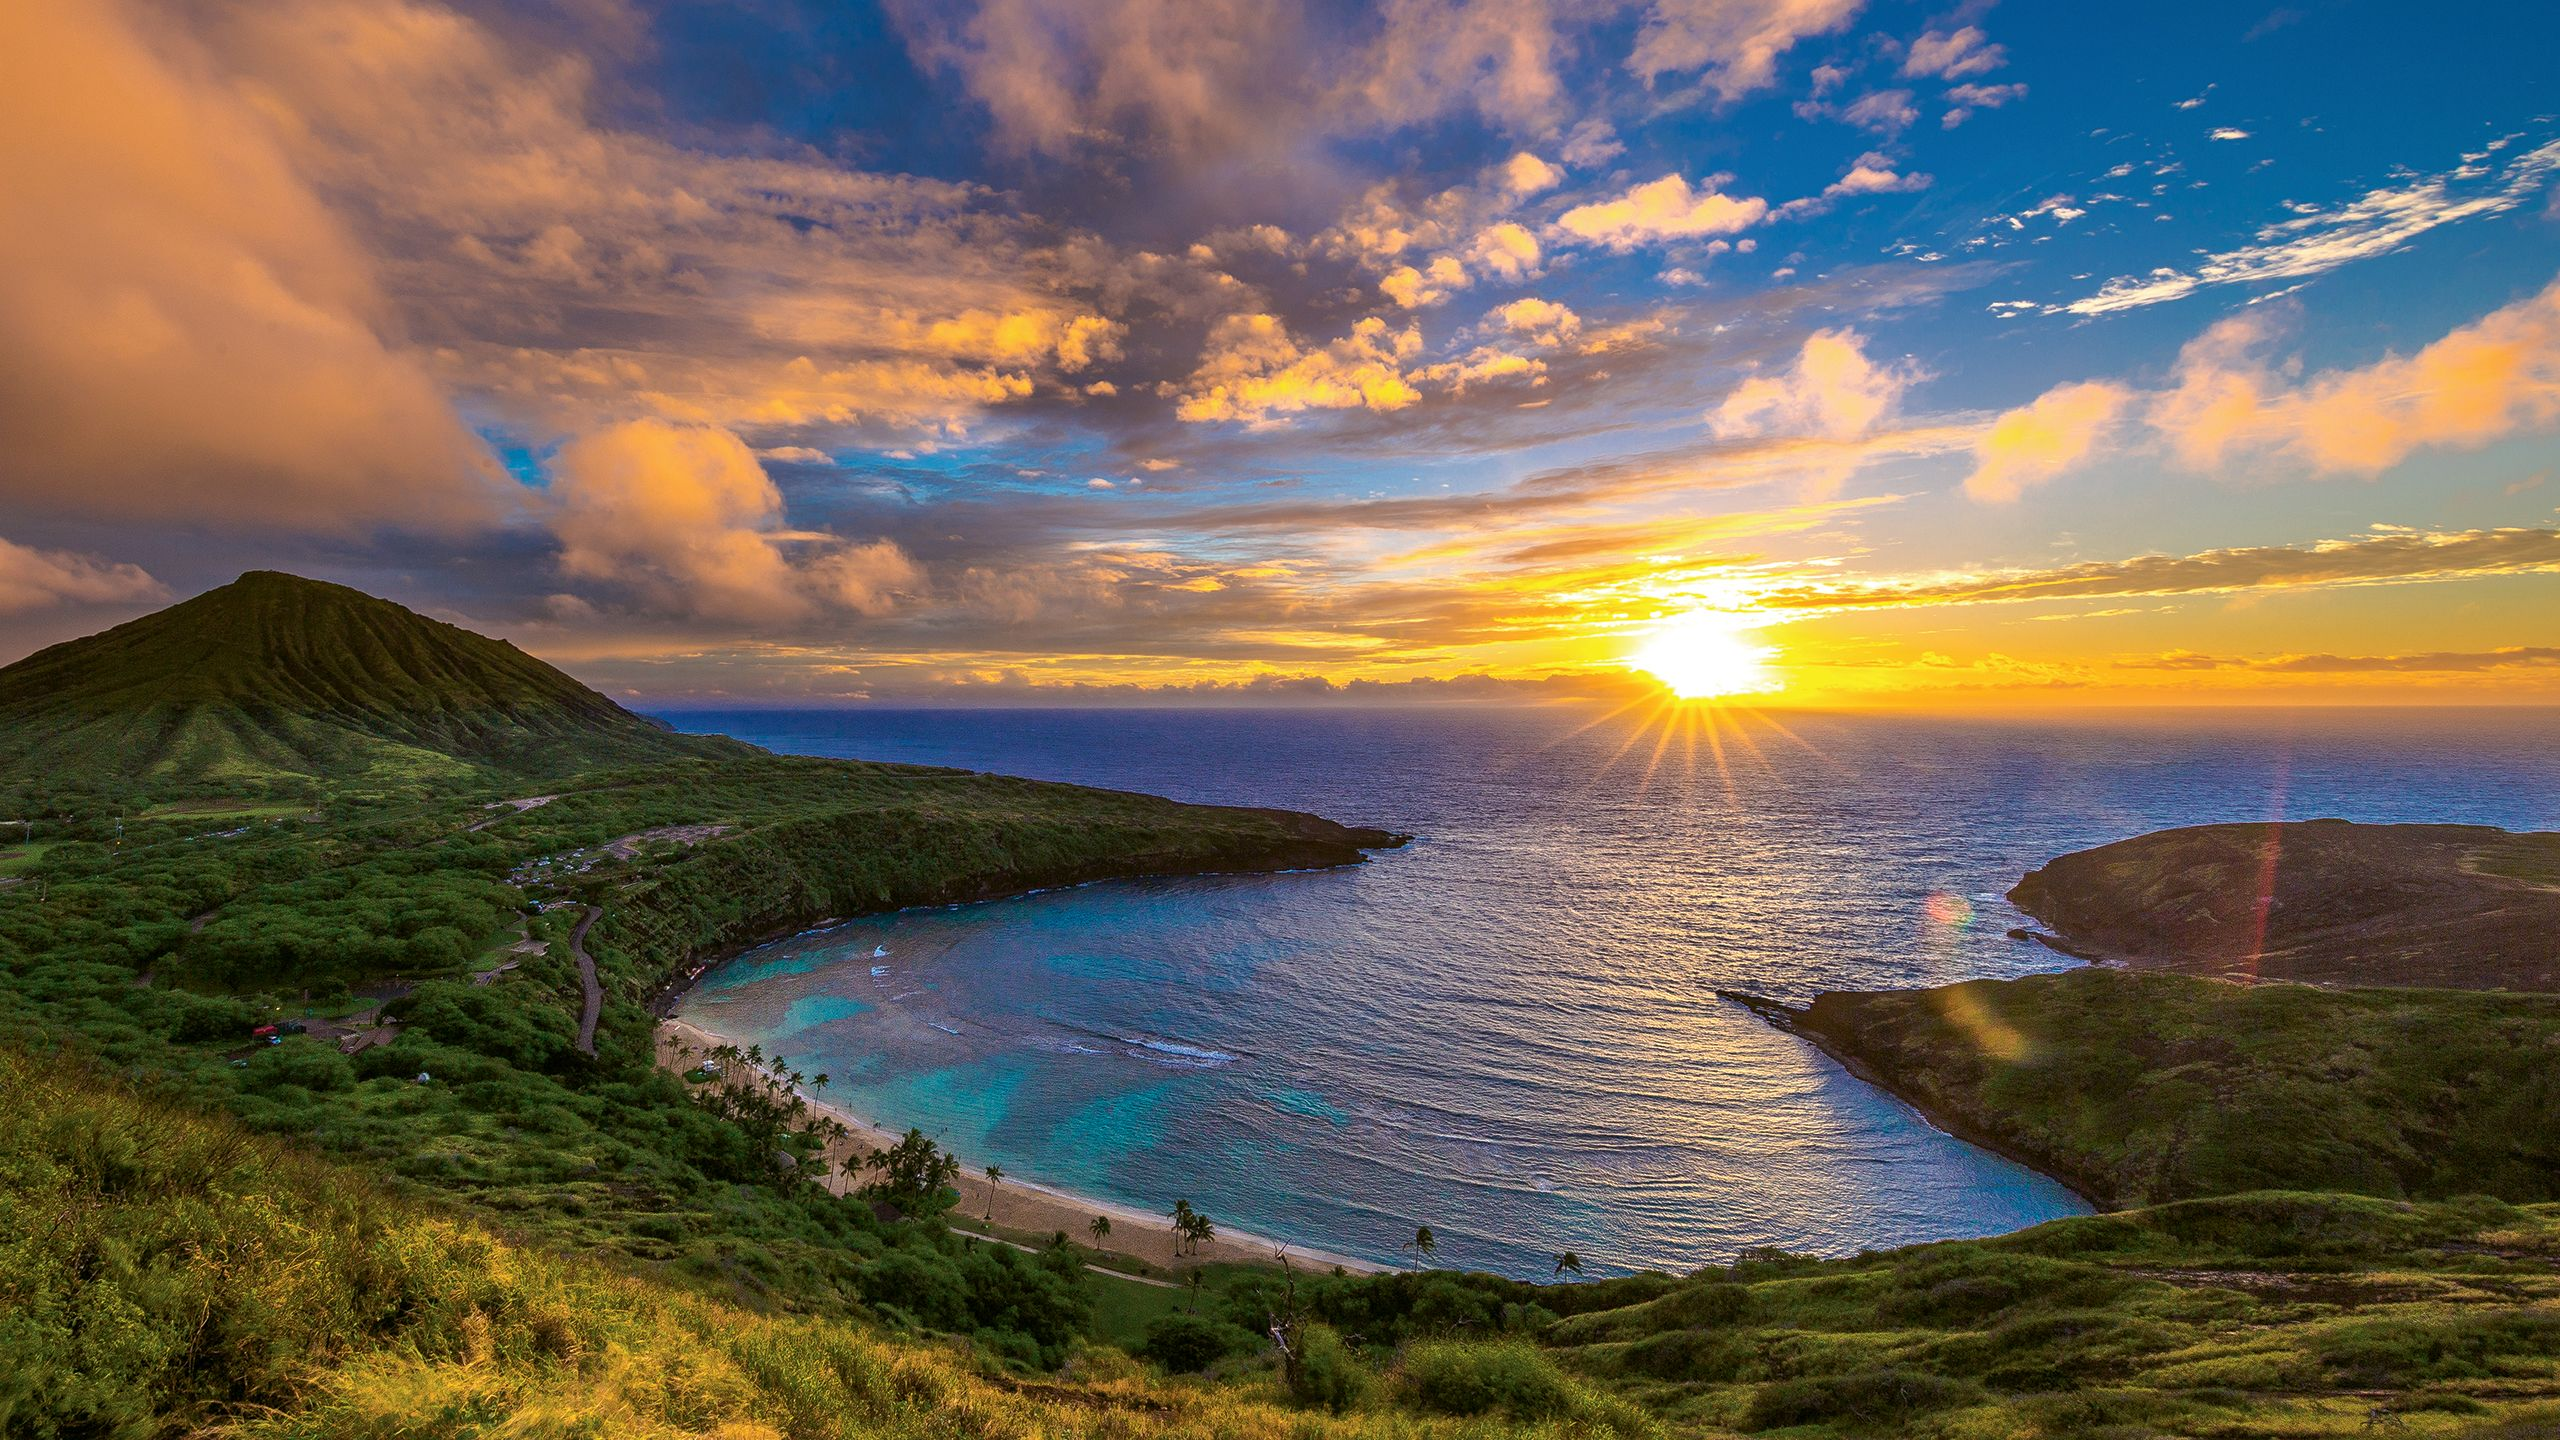 Sunrise from Hanauma Bay Nature Preserve on Oahu. The park is closed one day a week, and first-time visitors must watch a video on safety and conservation. Photo by Shane Myers Photography/Shutterstock.com